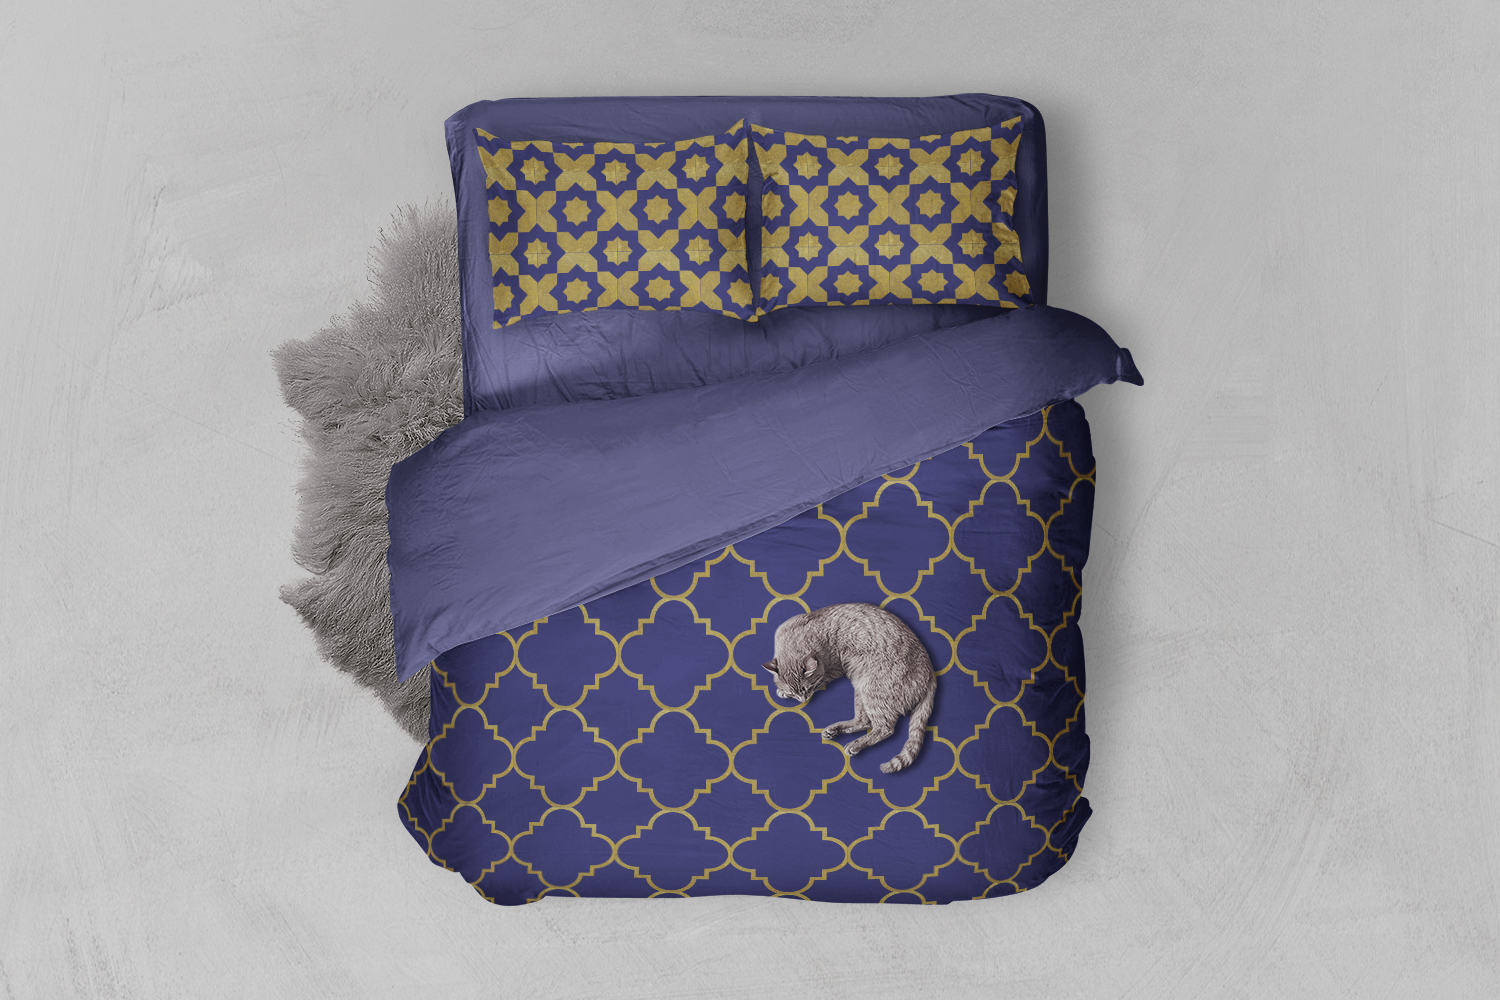 8 Seamless Moroccan Patterns - Gold & Cobalt Blue Set 2 example image 2